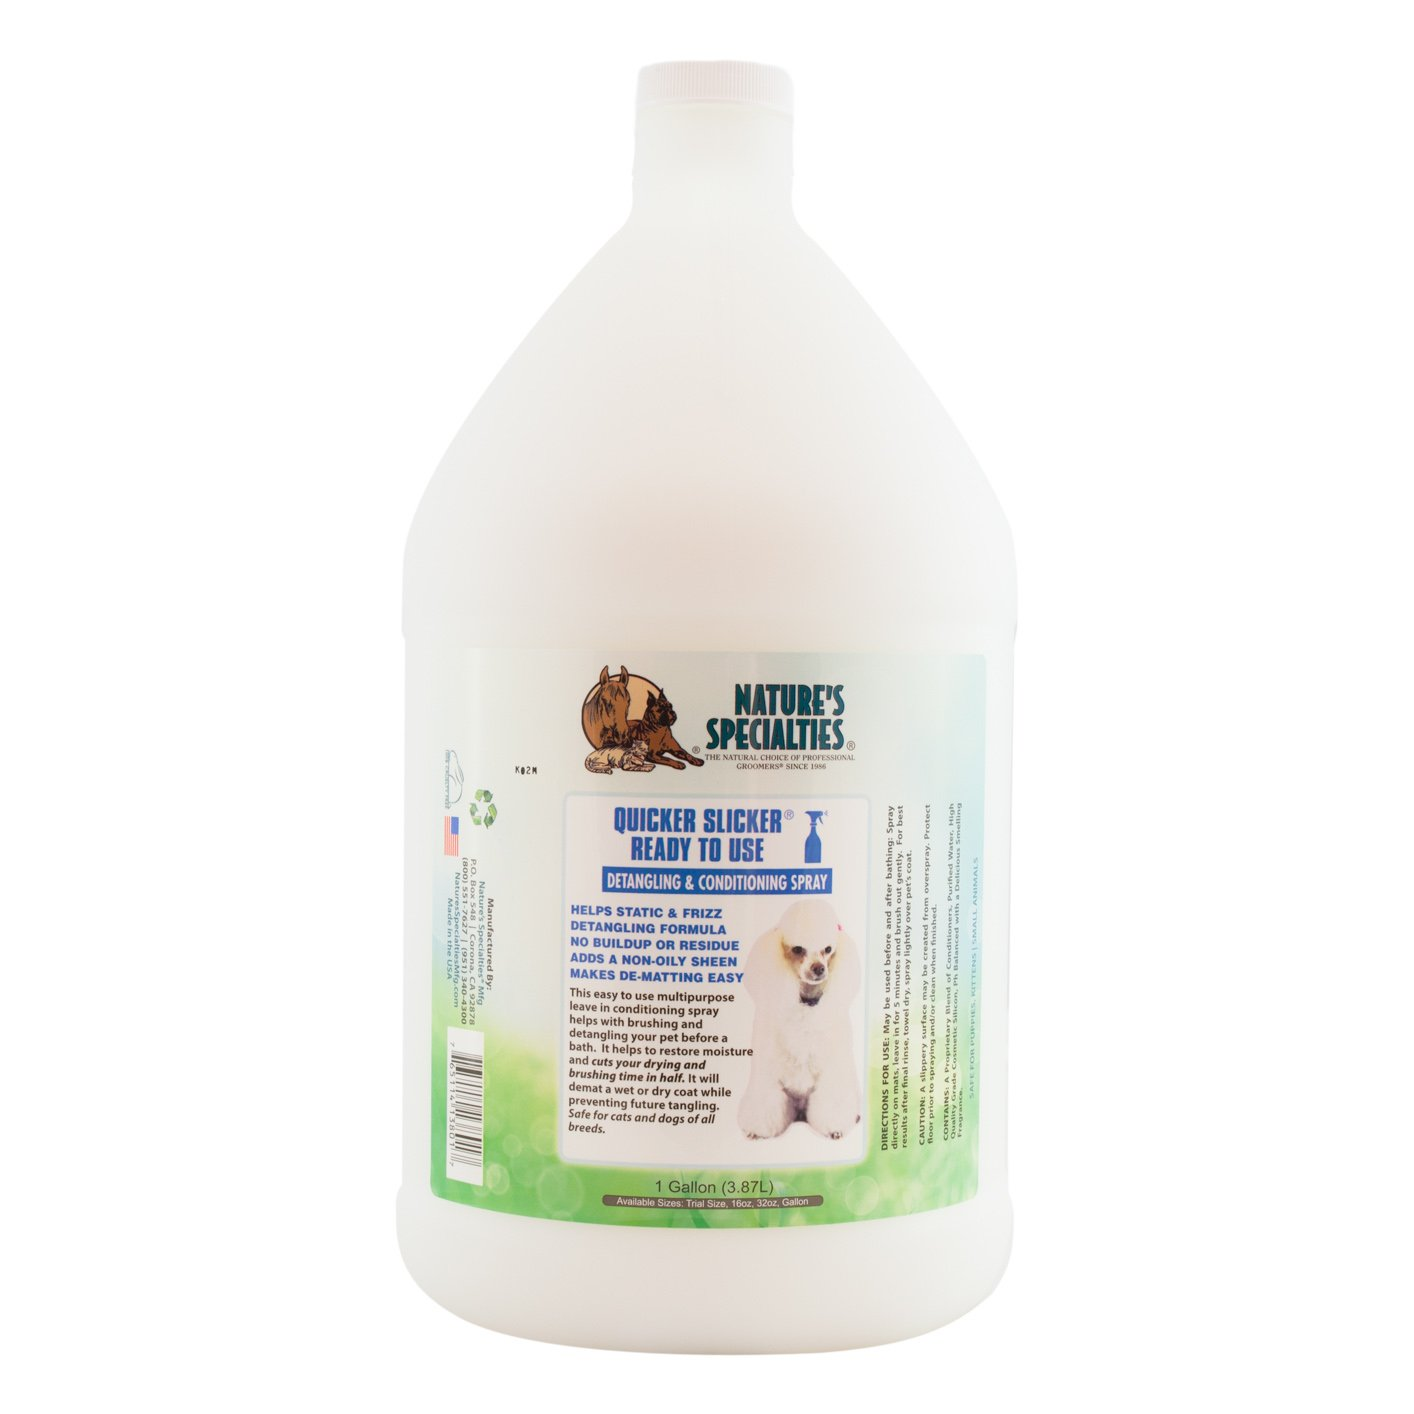 Nature's Specialties Quicker Slicker Ready to Use Pet Conditioner